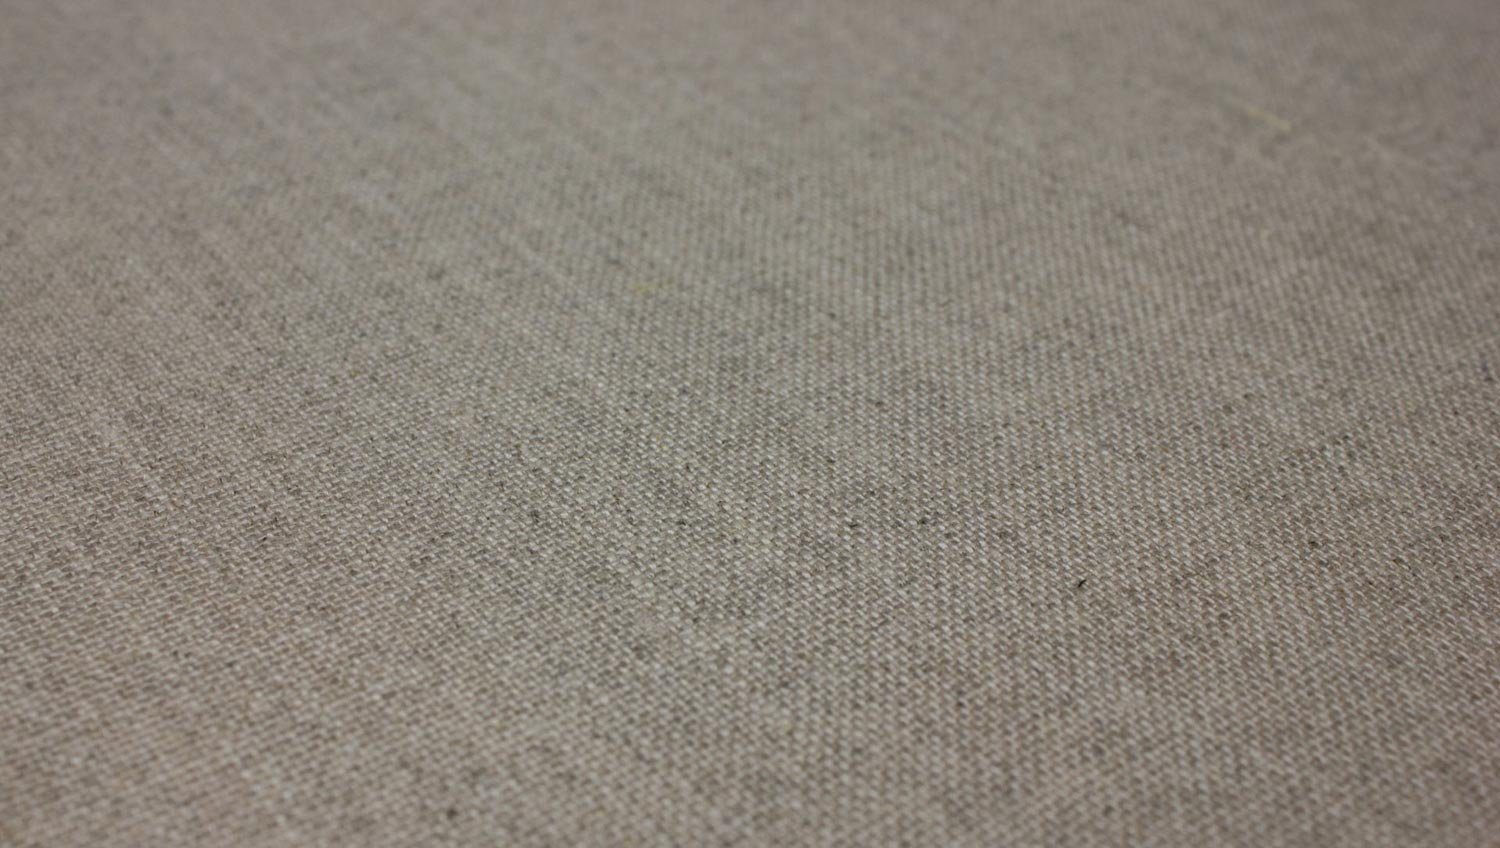 Frisk Stretched Natural Linen Canvas-305 x 254mm 12 x 10 12 x 10 Nylon//A Pack of 2